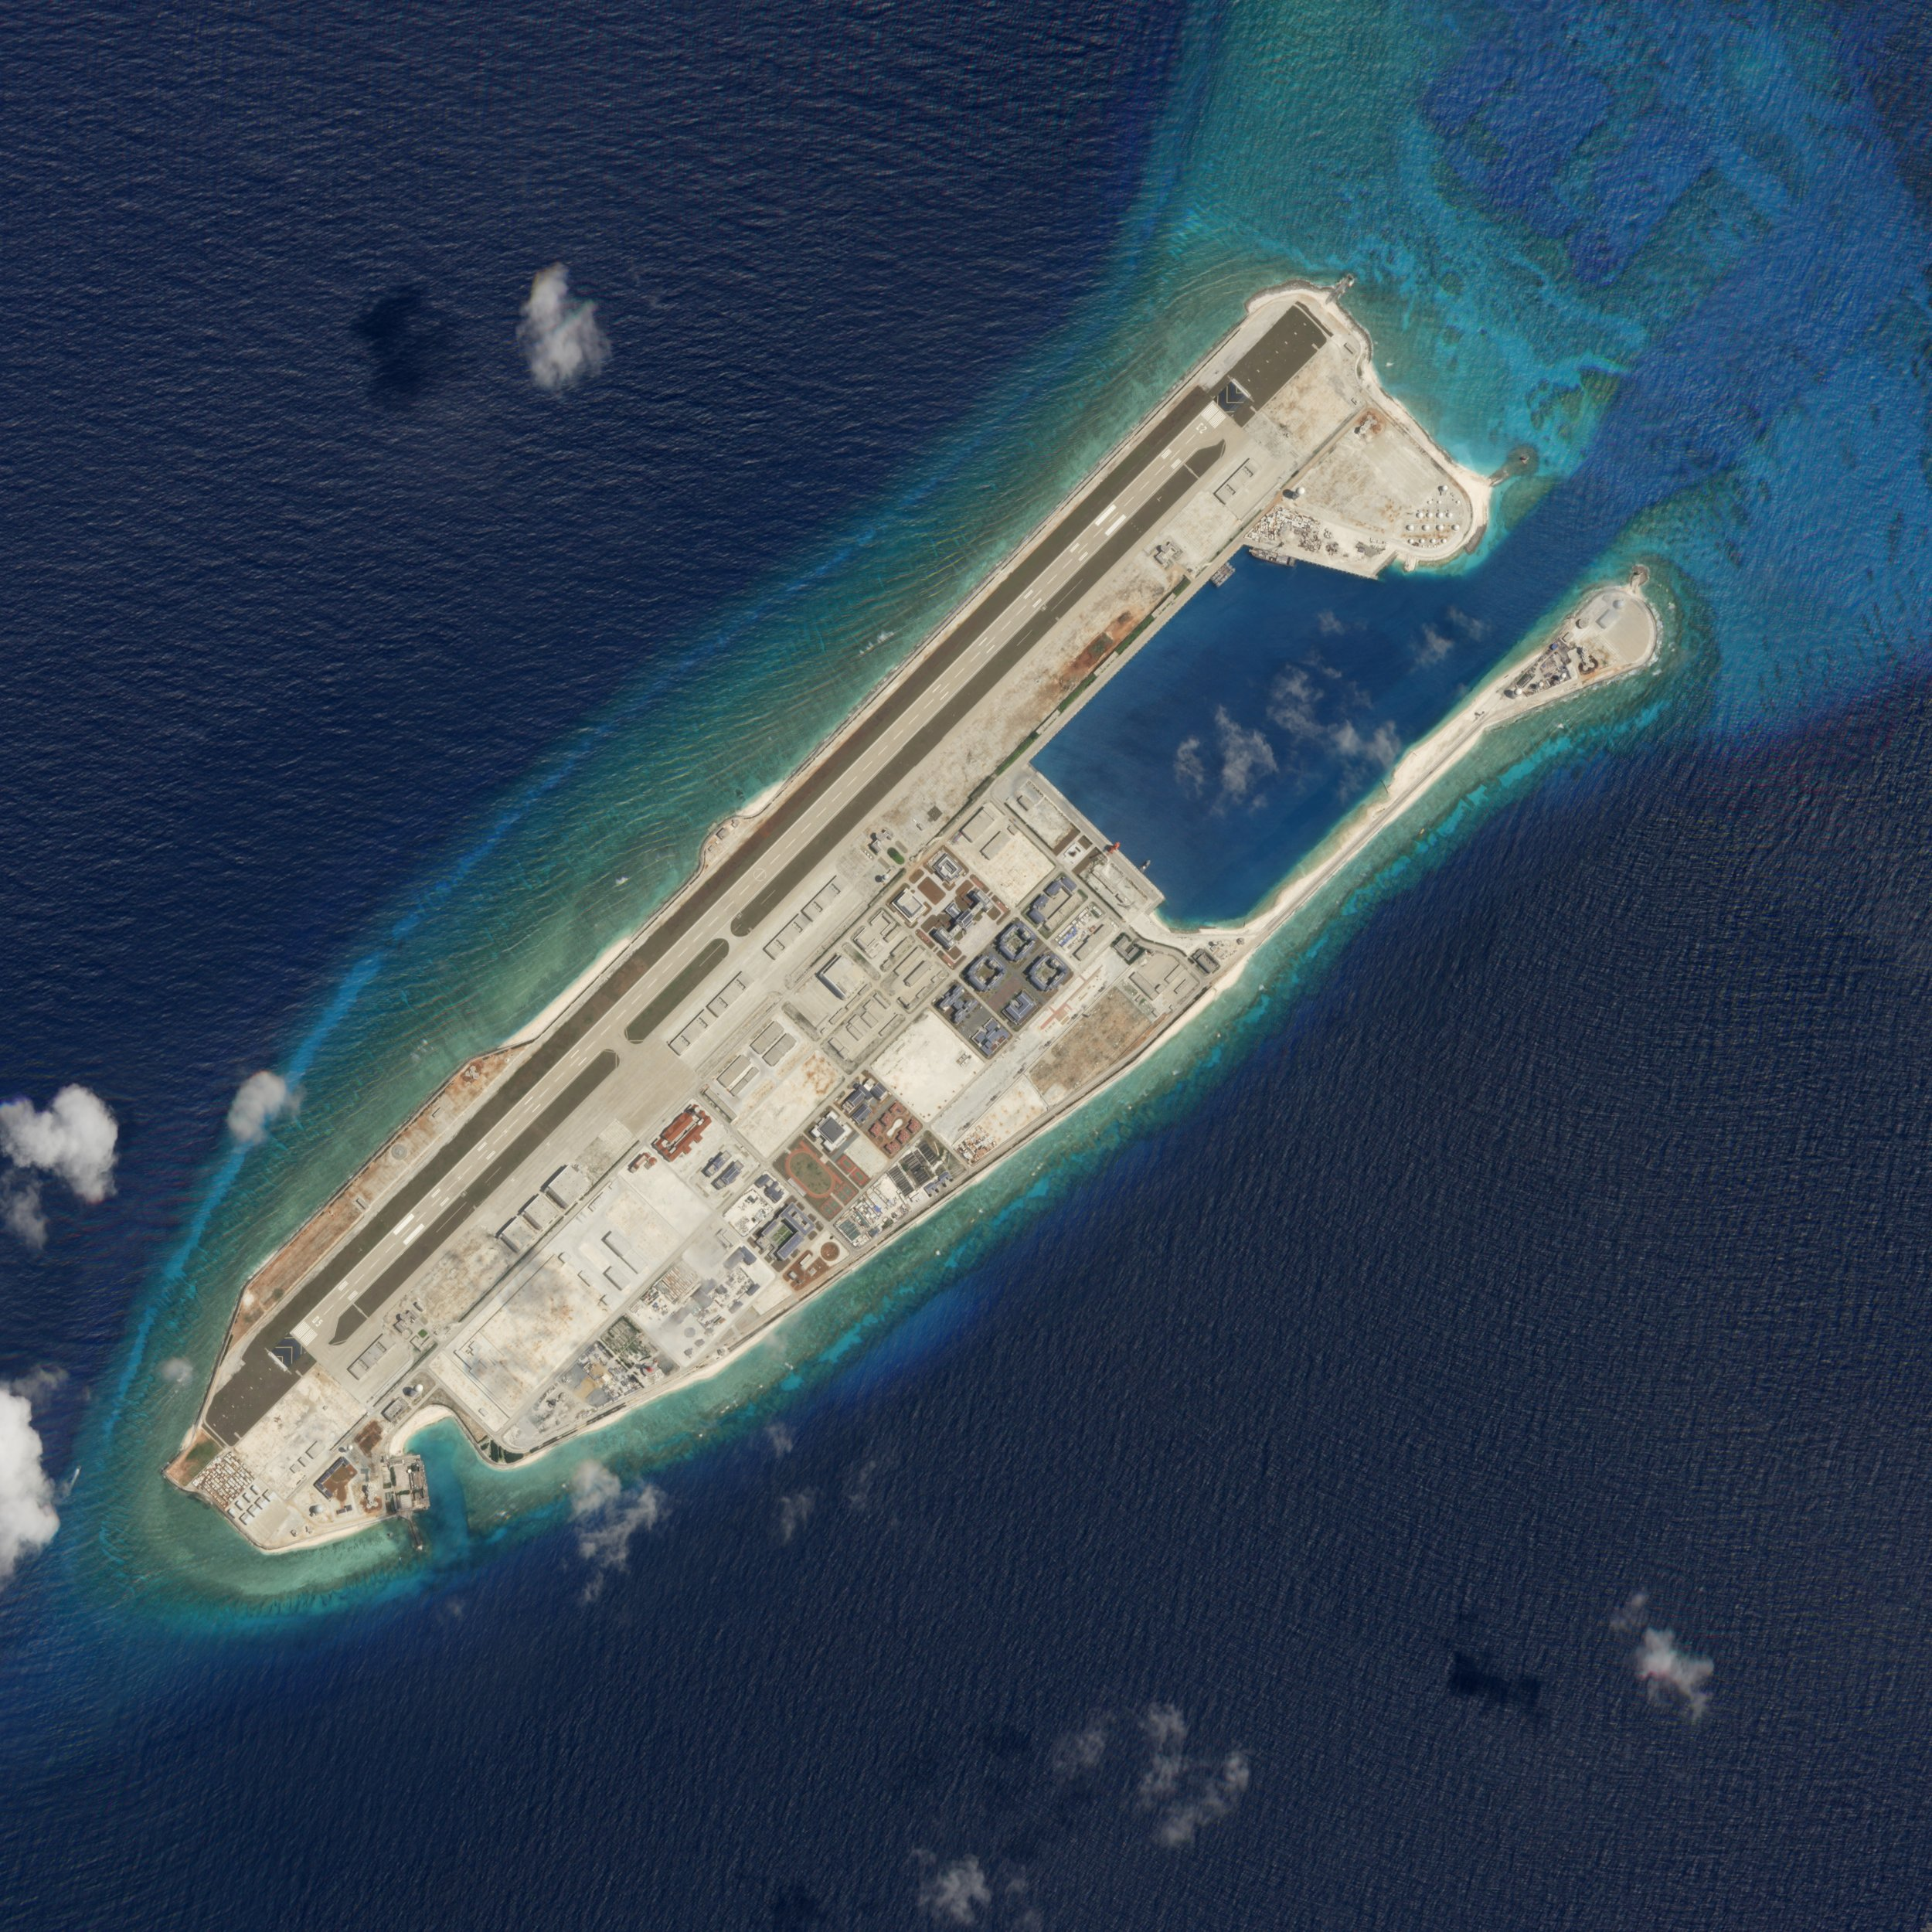 U.S. Could 'Take Down' Man-made Islands In South China Sea